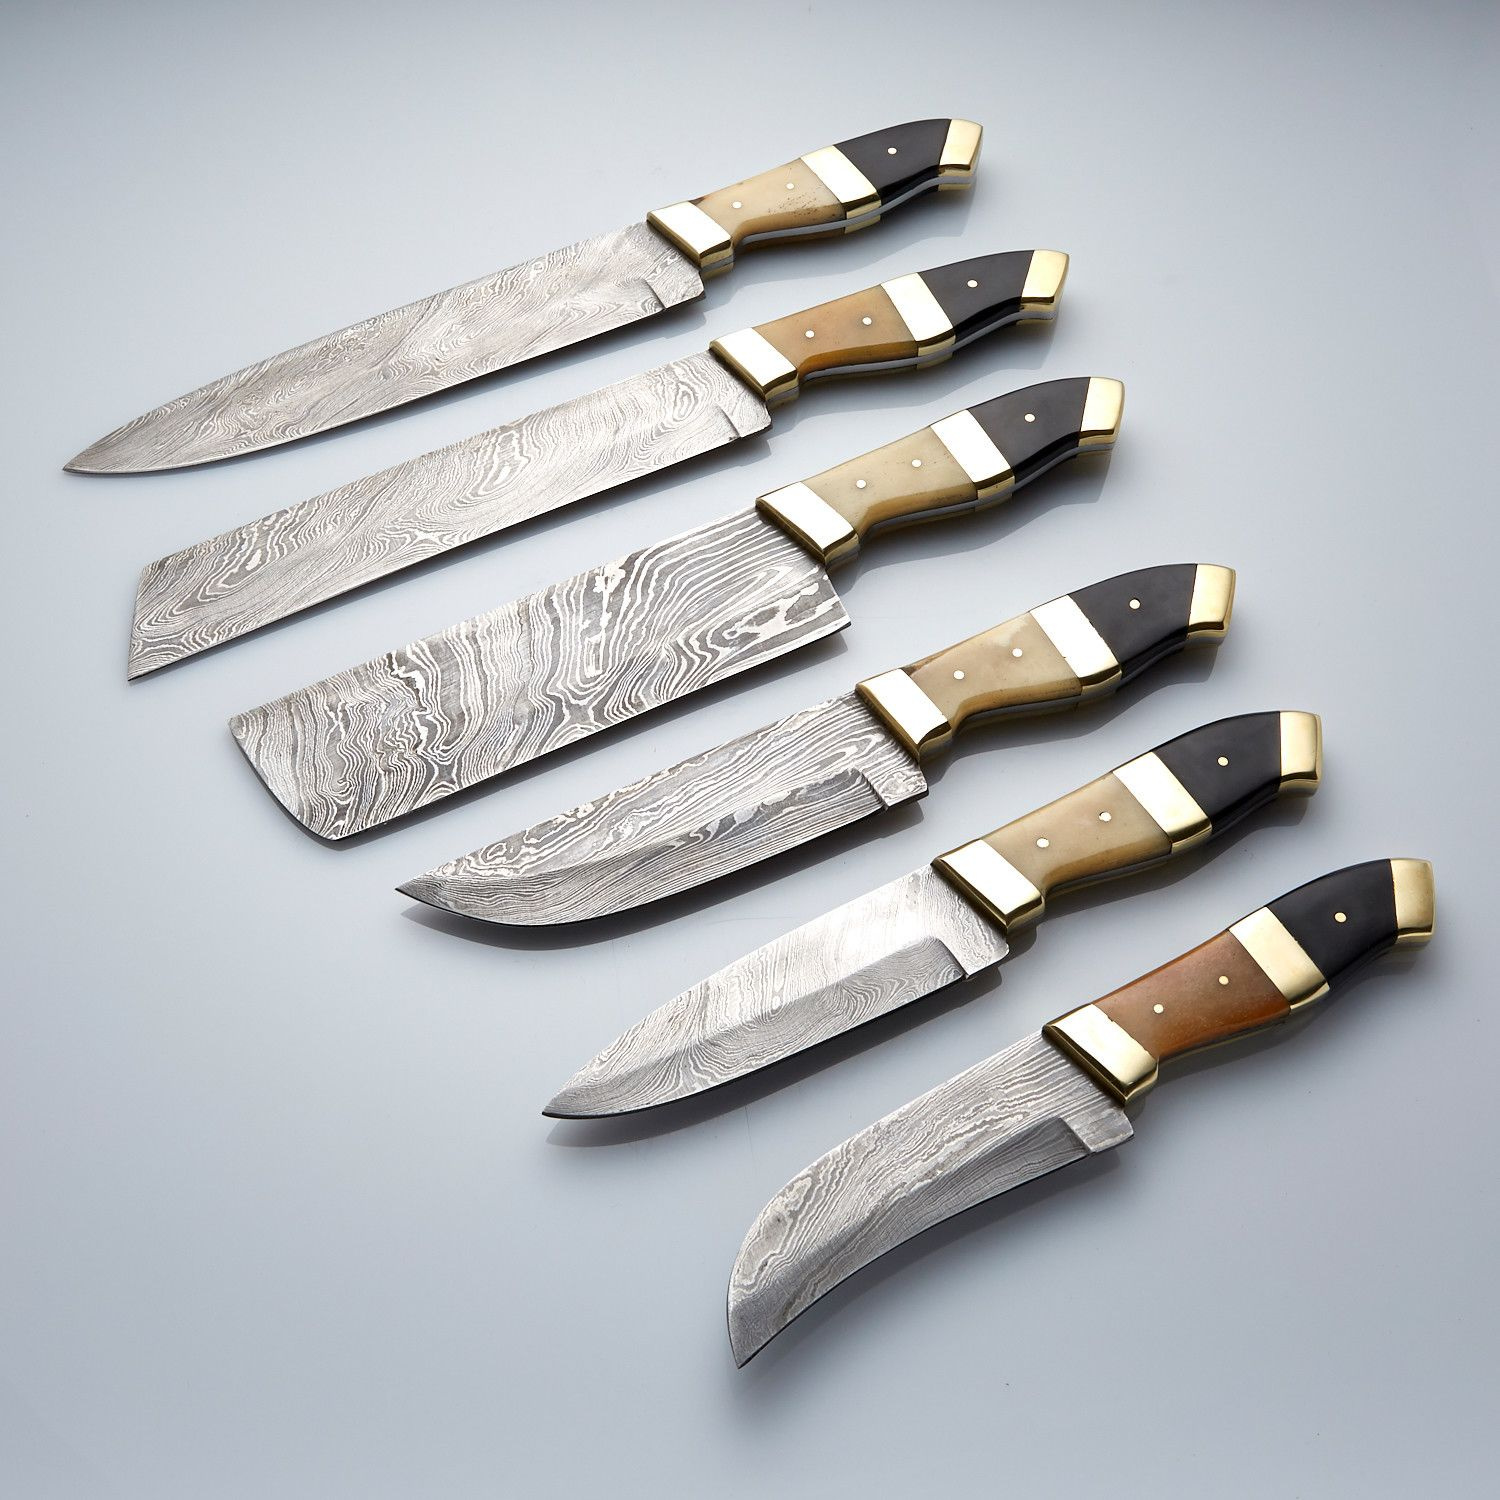 6 pcs custom made damascus chef/kitchen knife set